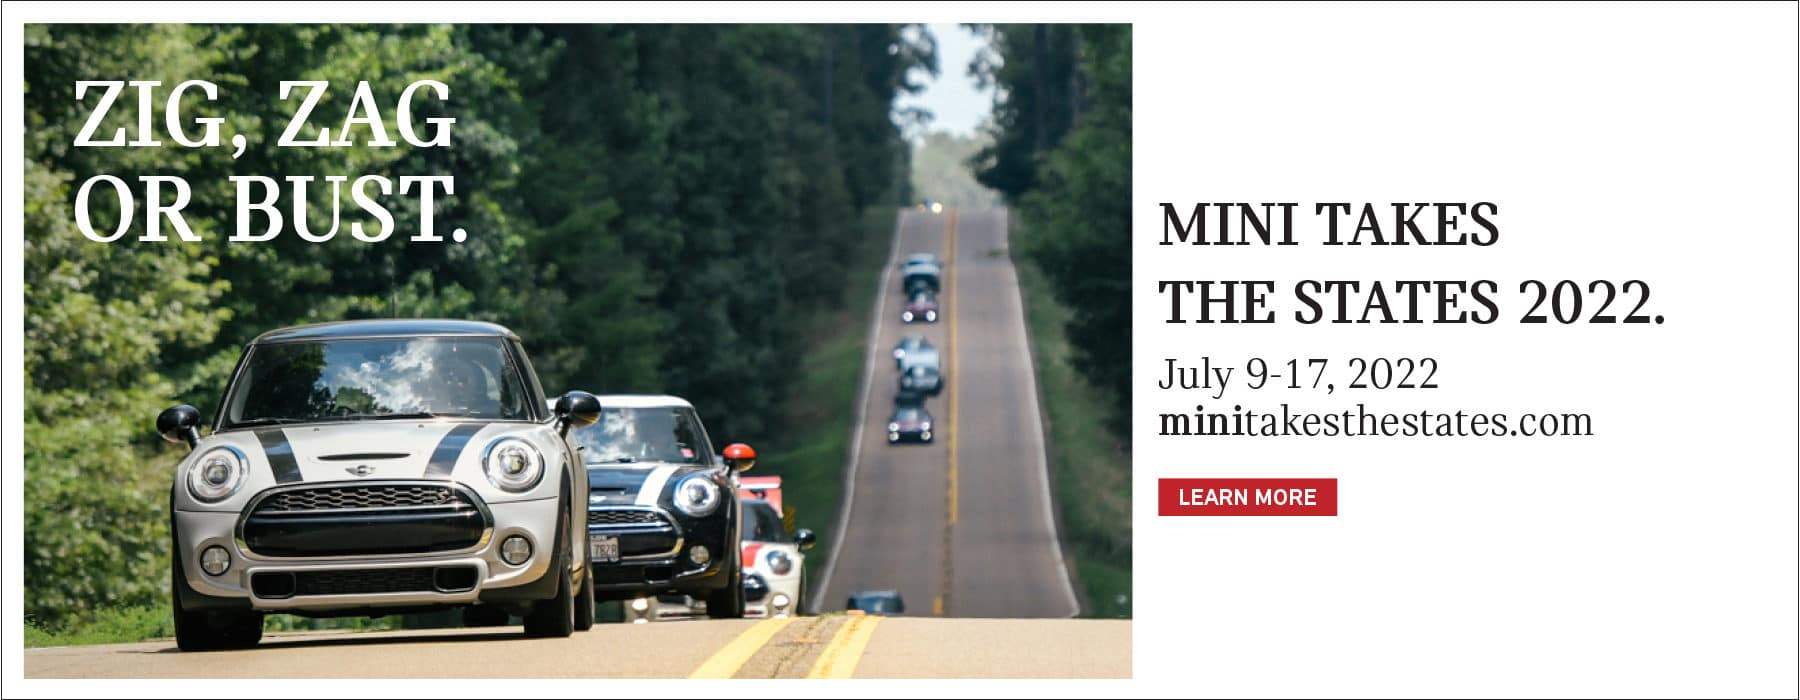 MINI TAKES THE STATES FROM JULY 9-17, 2022. CLICK TO LEARN MORE.